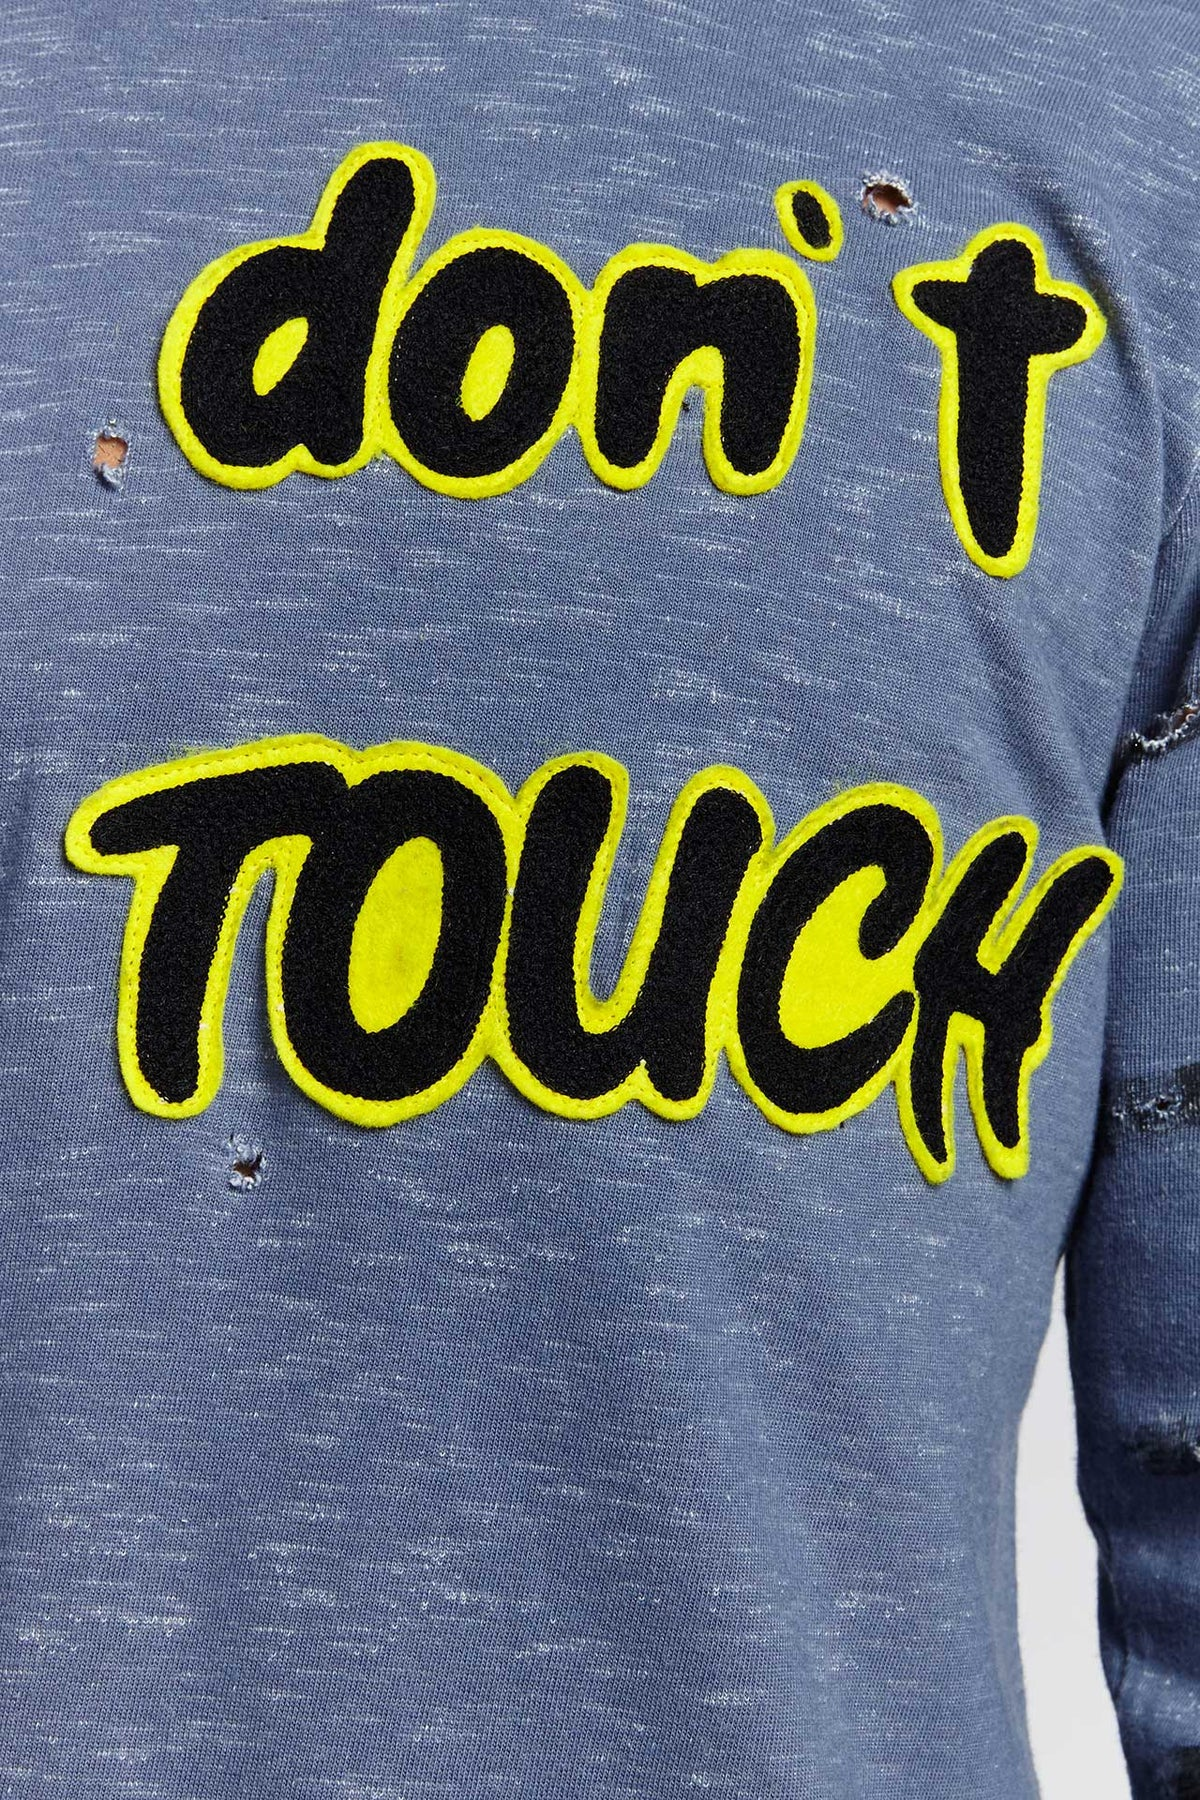 DON'T TOUCH COTTON BLUE LARGE SWEATER-SHIRTS-Mundane Official-Light Blue-L-Mundane Official